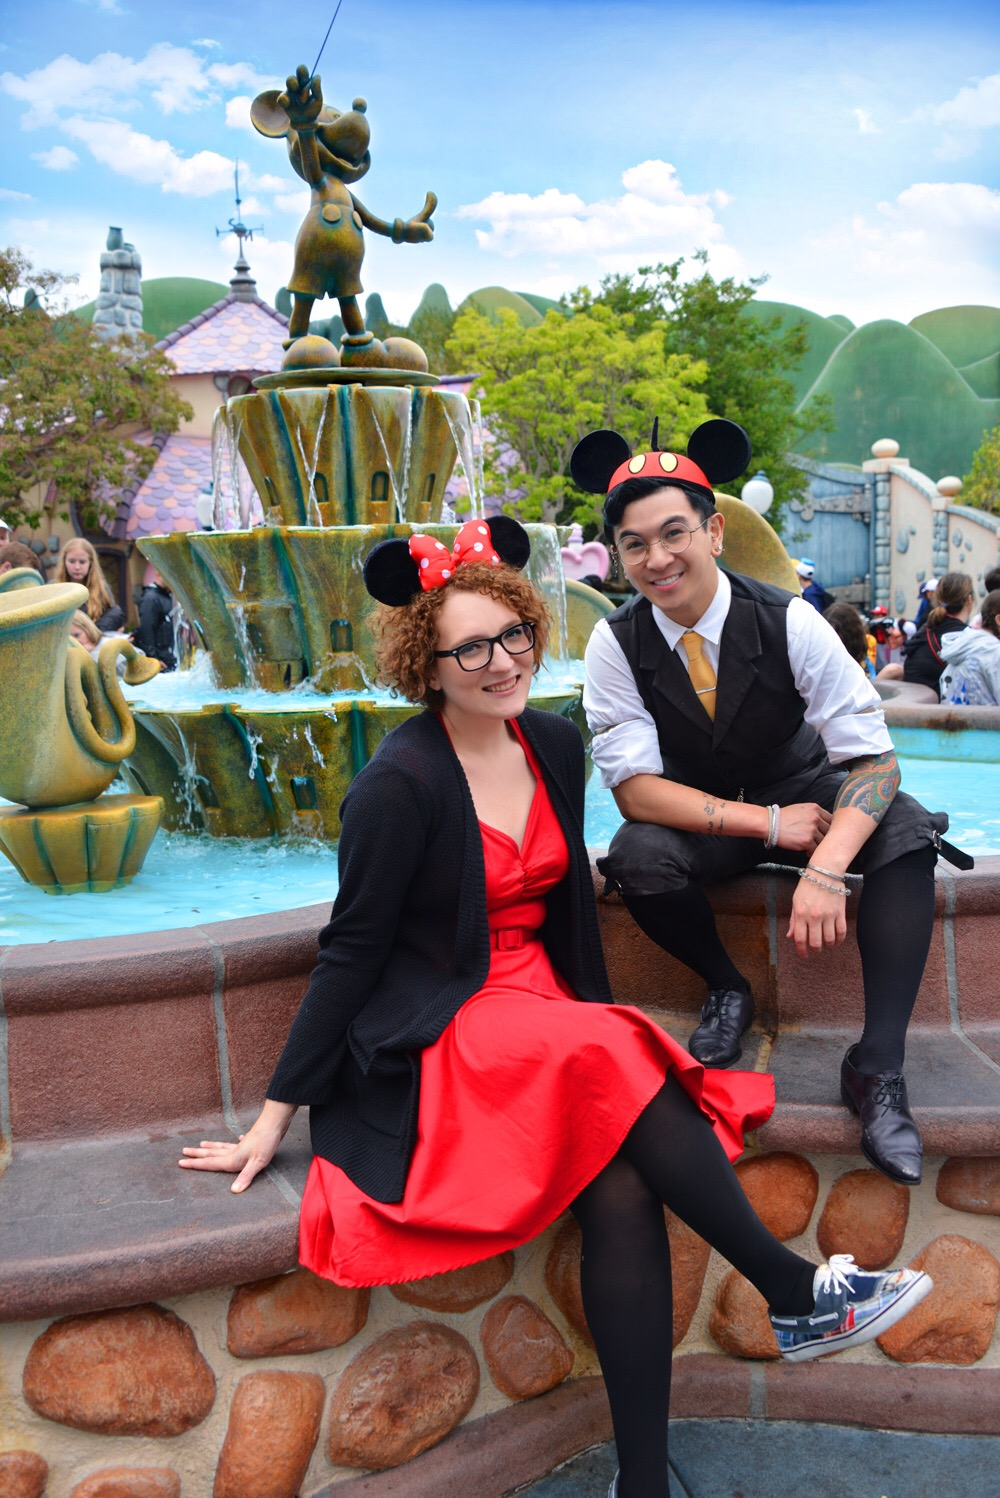 DisneyBounding - Very Nerdy Curly - www.verynerdycurly.com